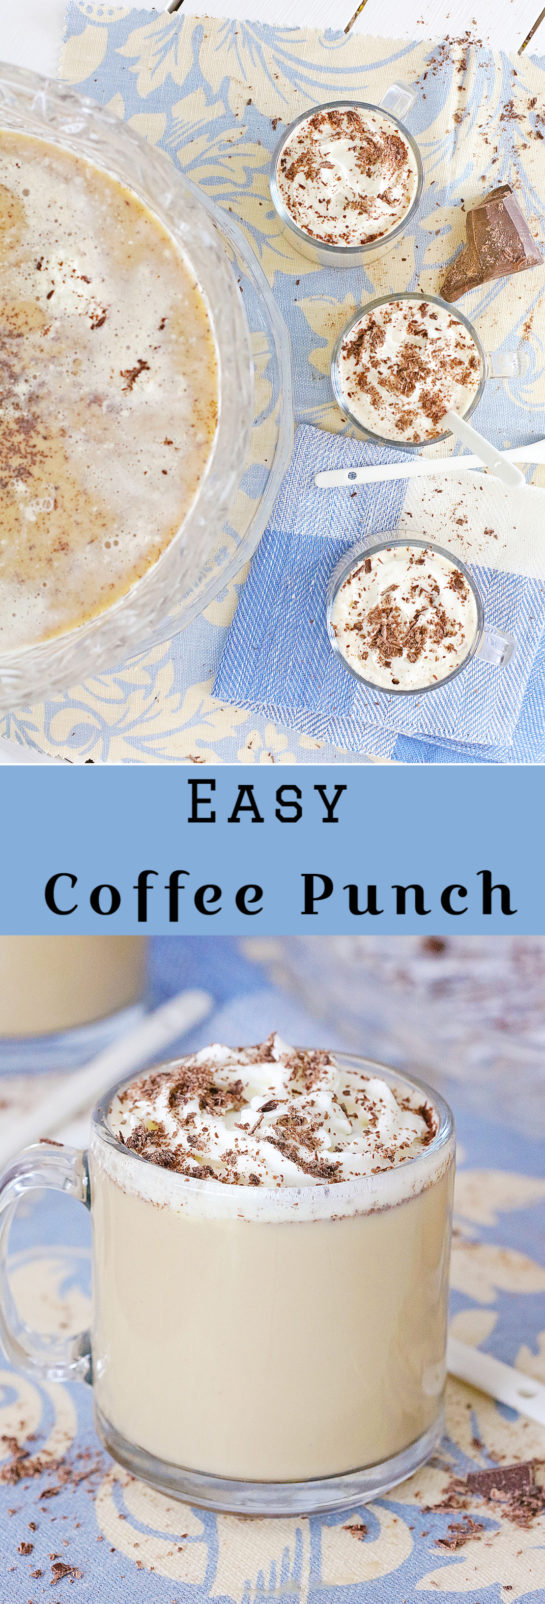 This Easy Coffee Punch recipe is not for the faint of heart! Who doesn't love a punch bowl overflowing with frothy goodness for the holidays, New Year's Eve, or a bridal shower!